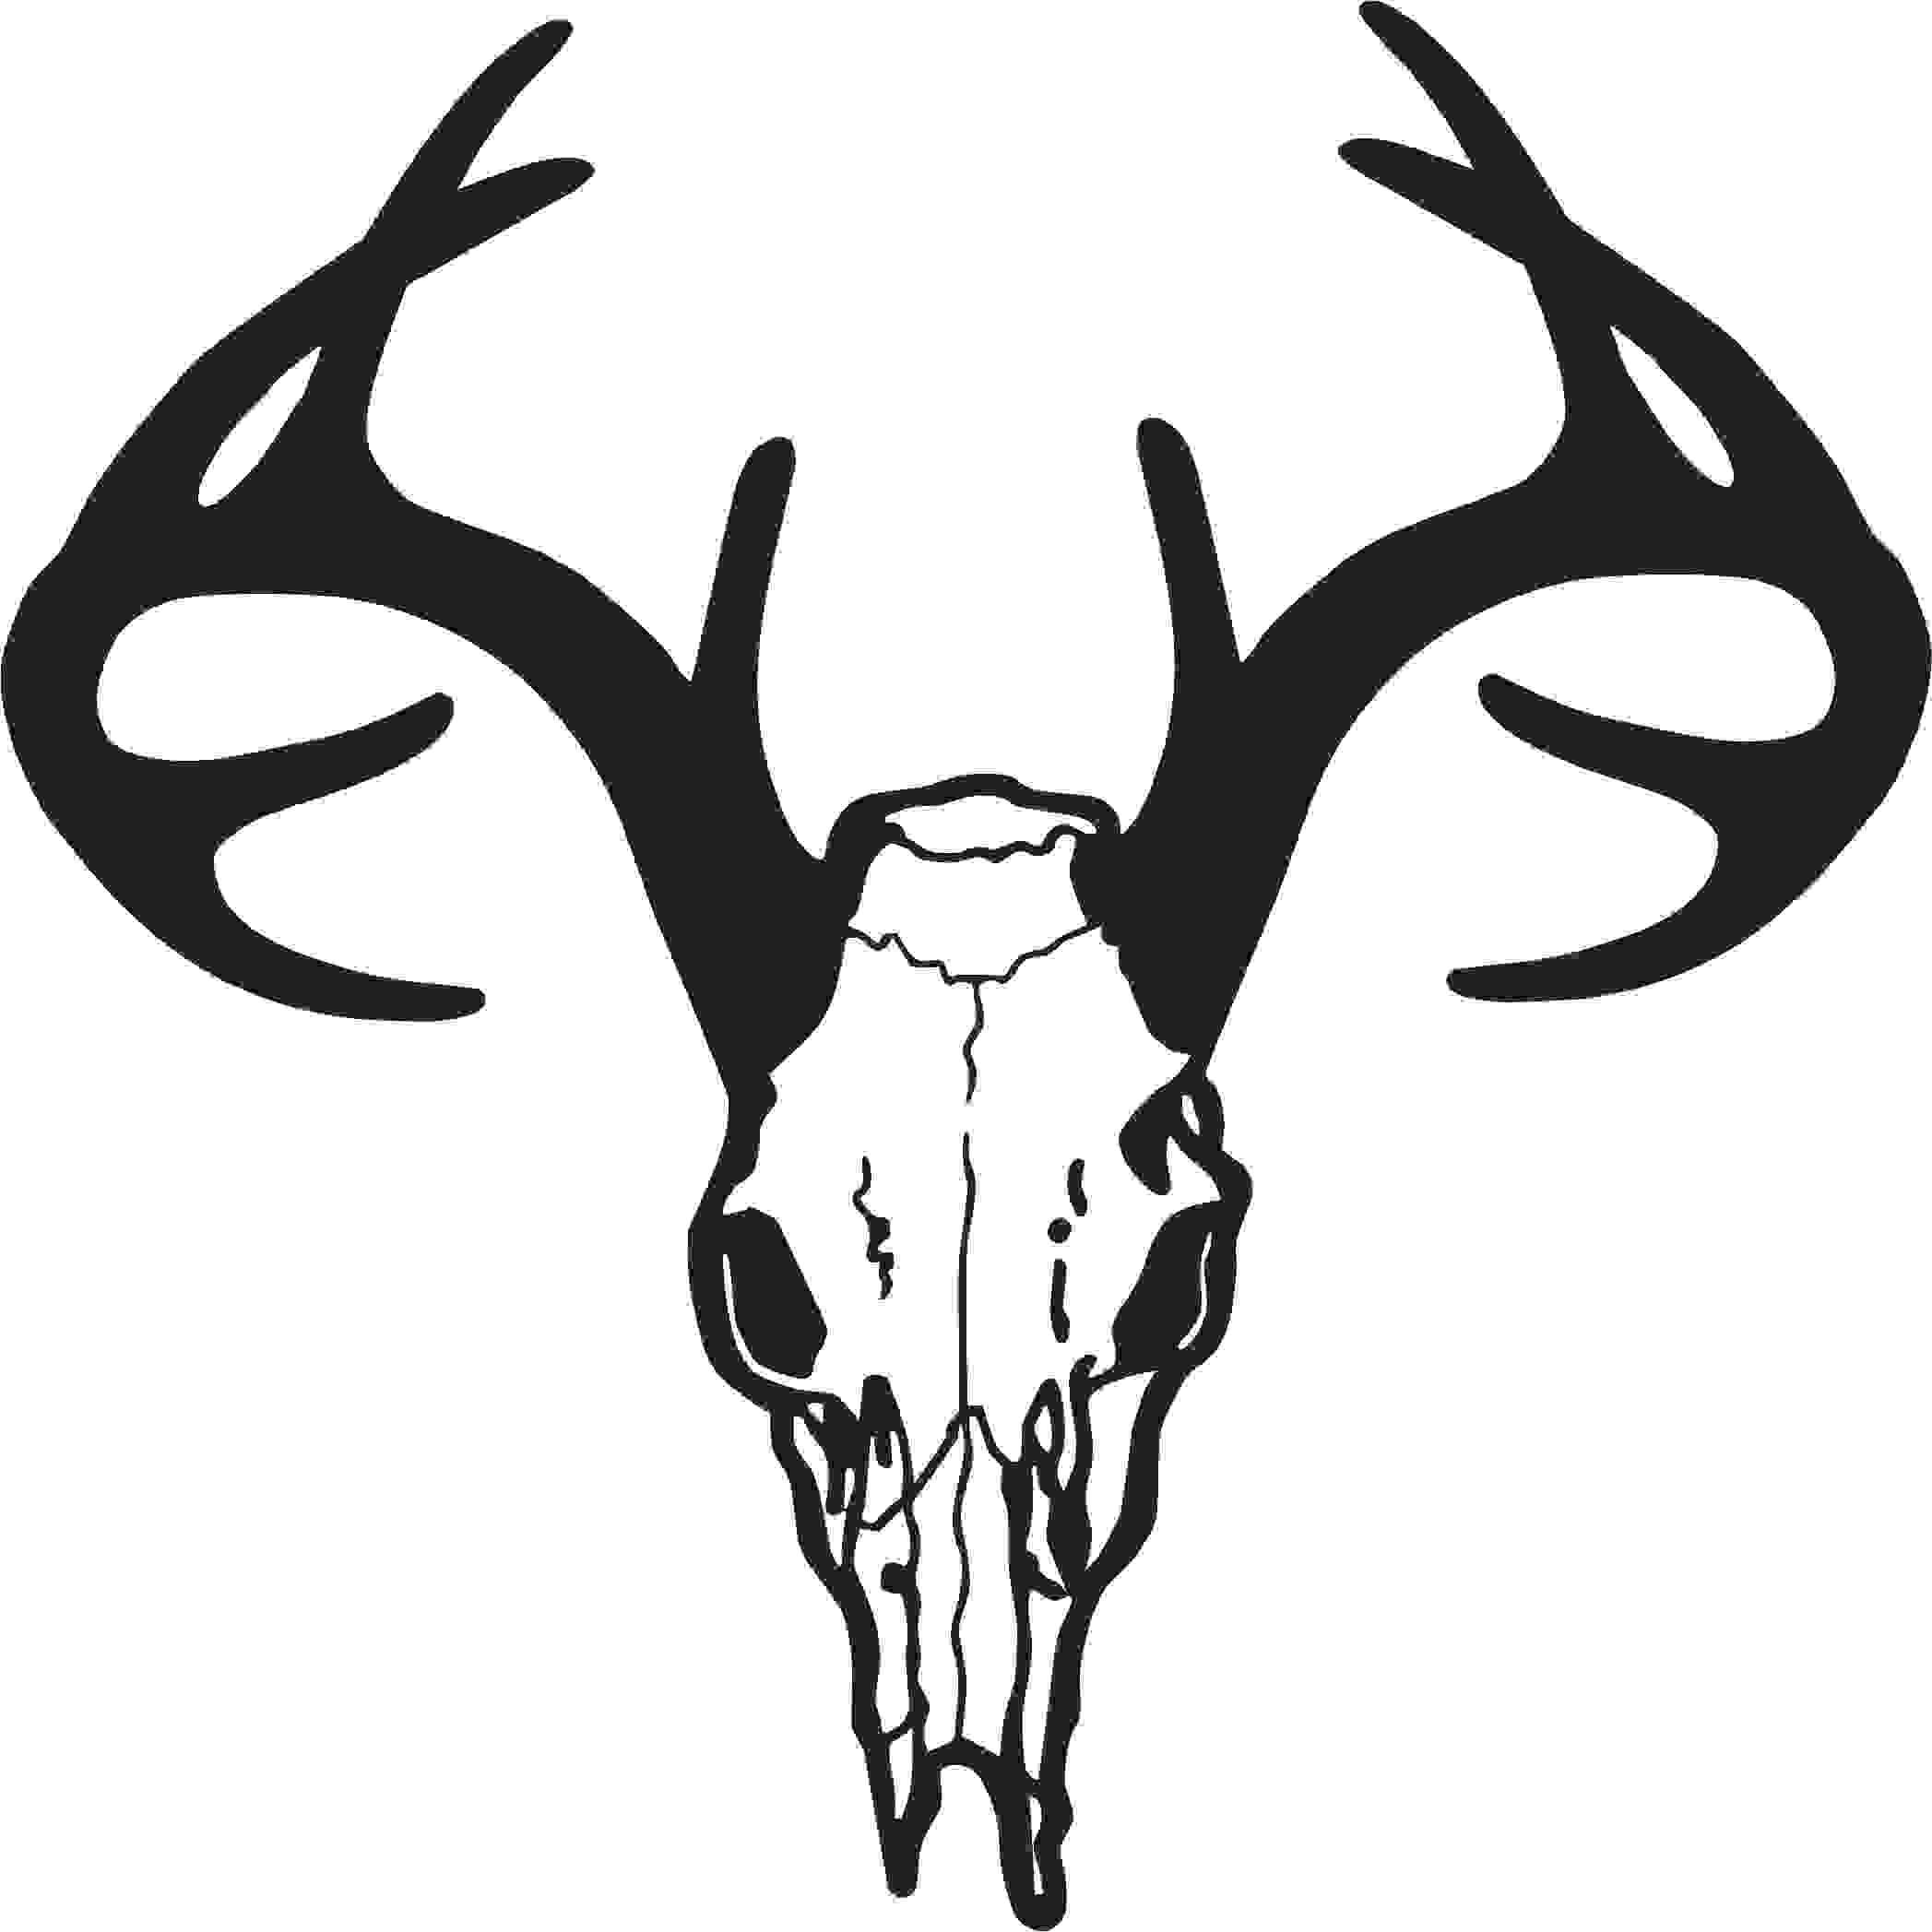 2095x2095 Diagram Diagram Of Whitetail Deer Skull Close Up Image A And His